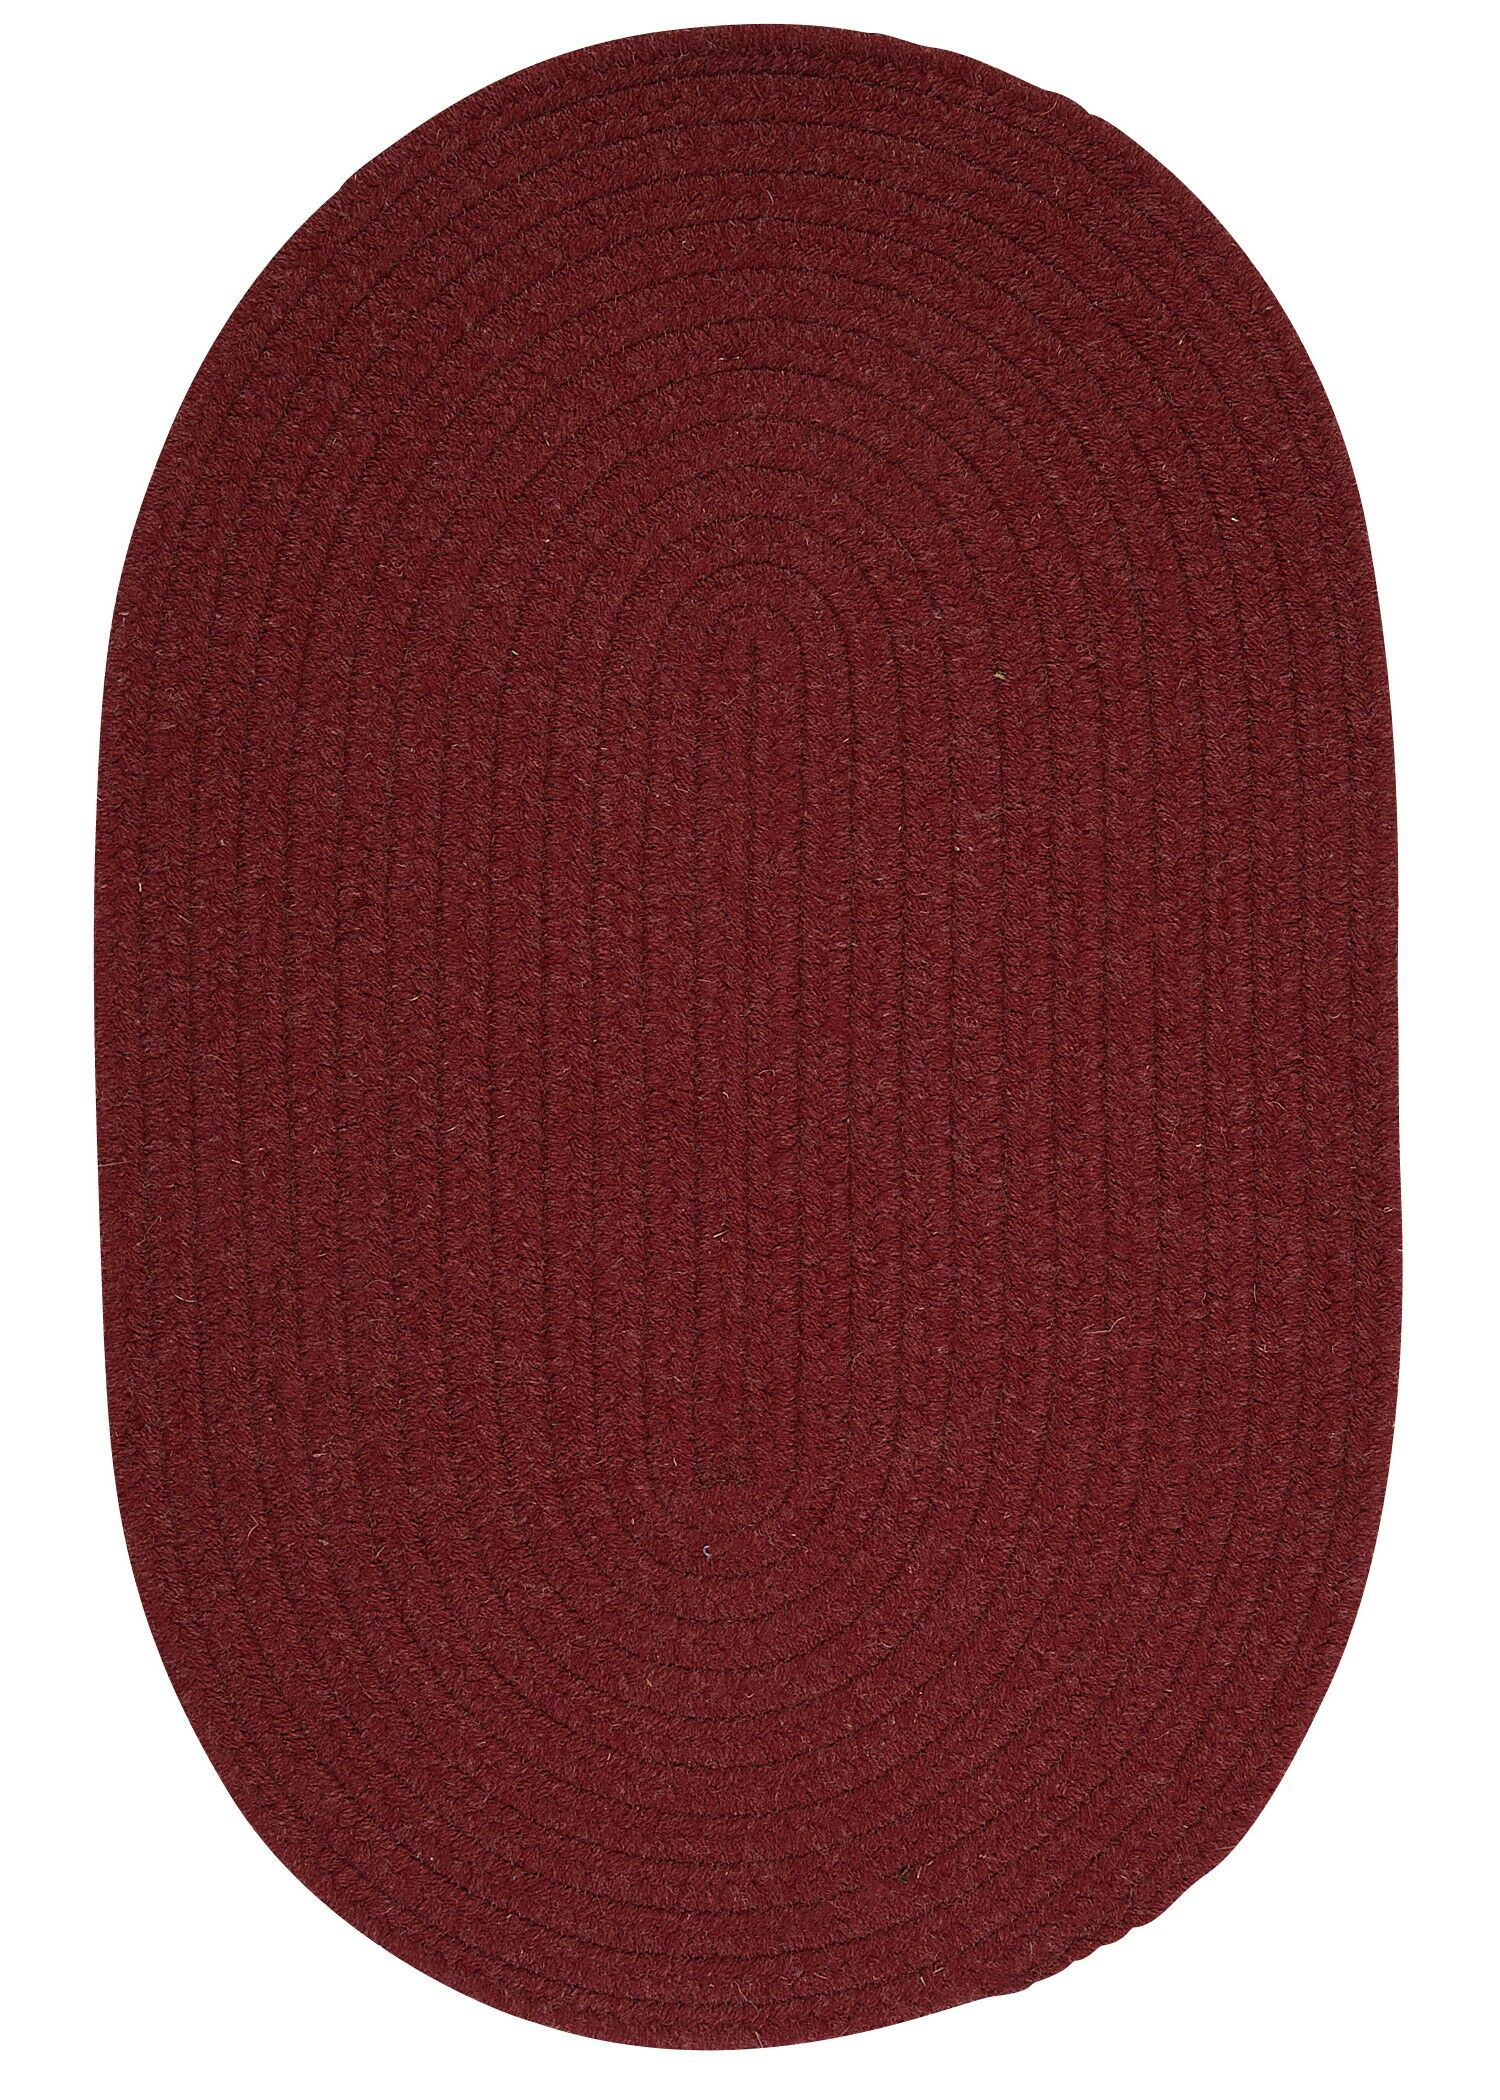 Navarrette Holly Berry Area Rug Rug Size: Round 4'